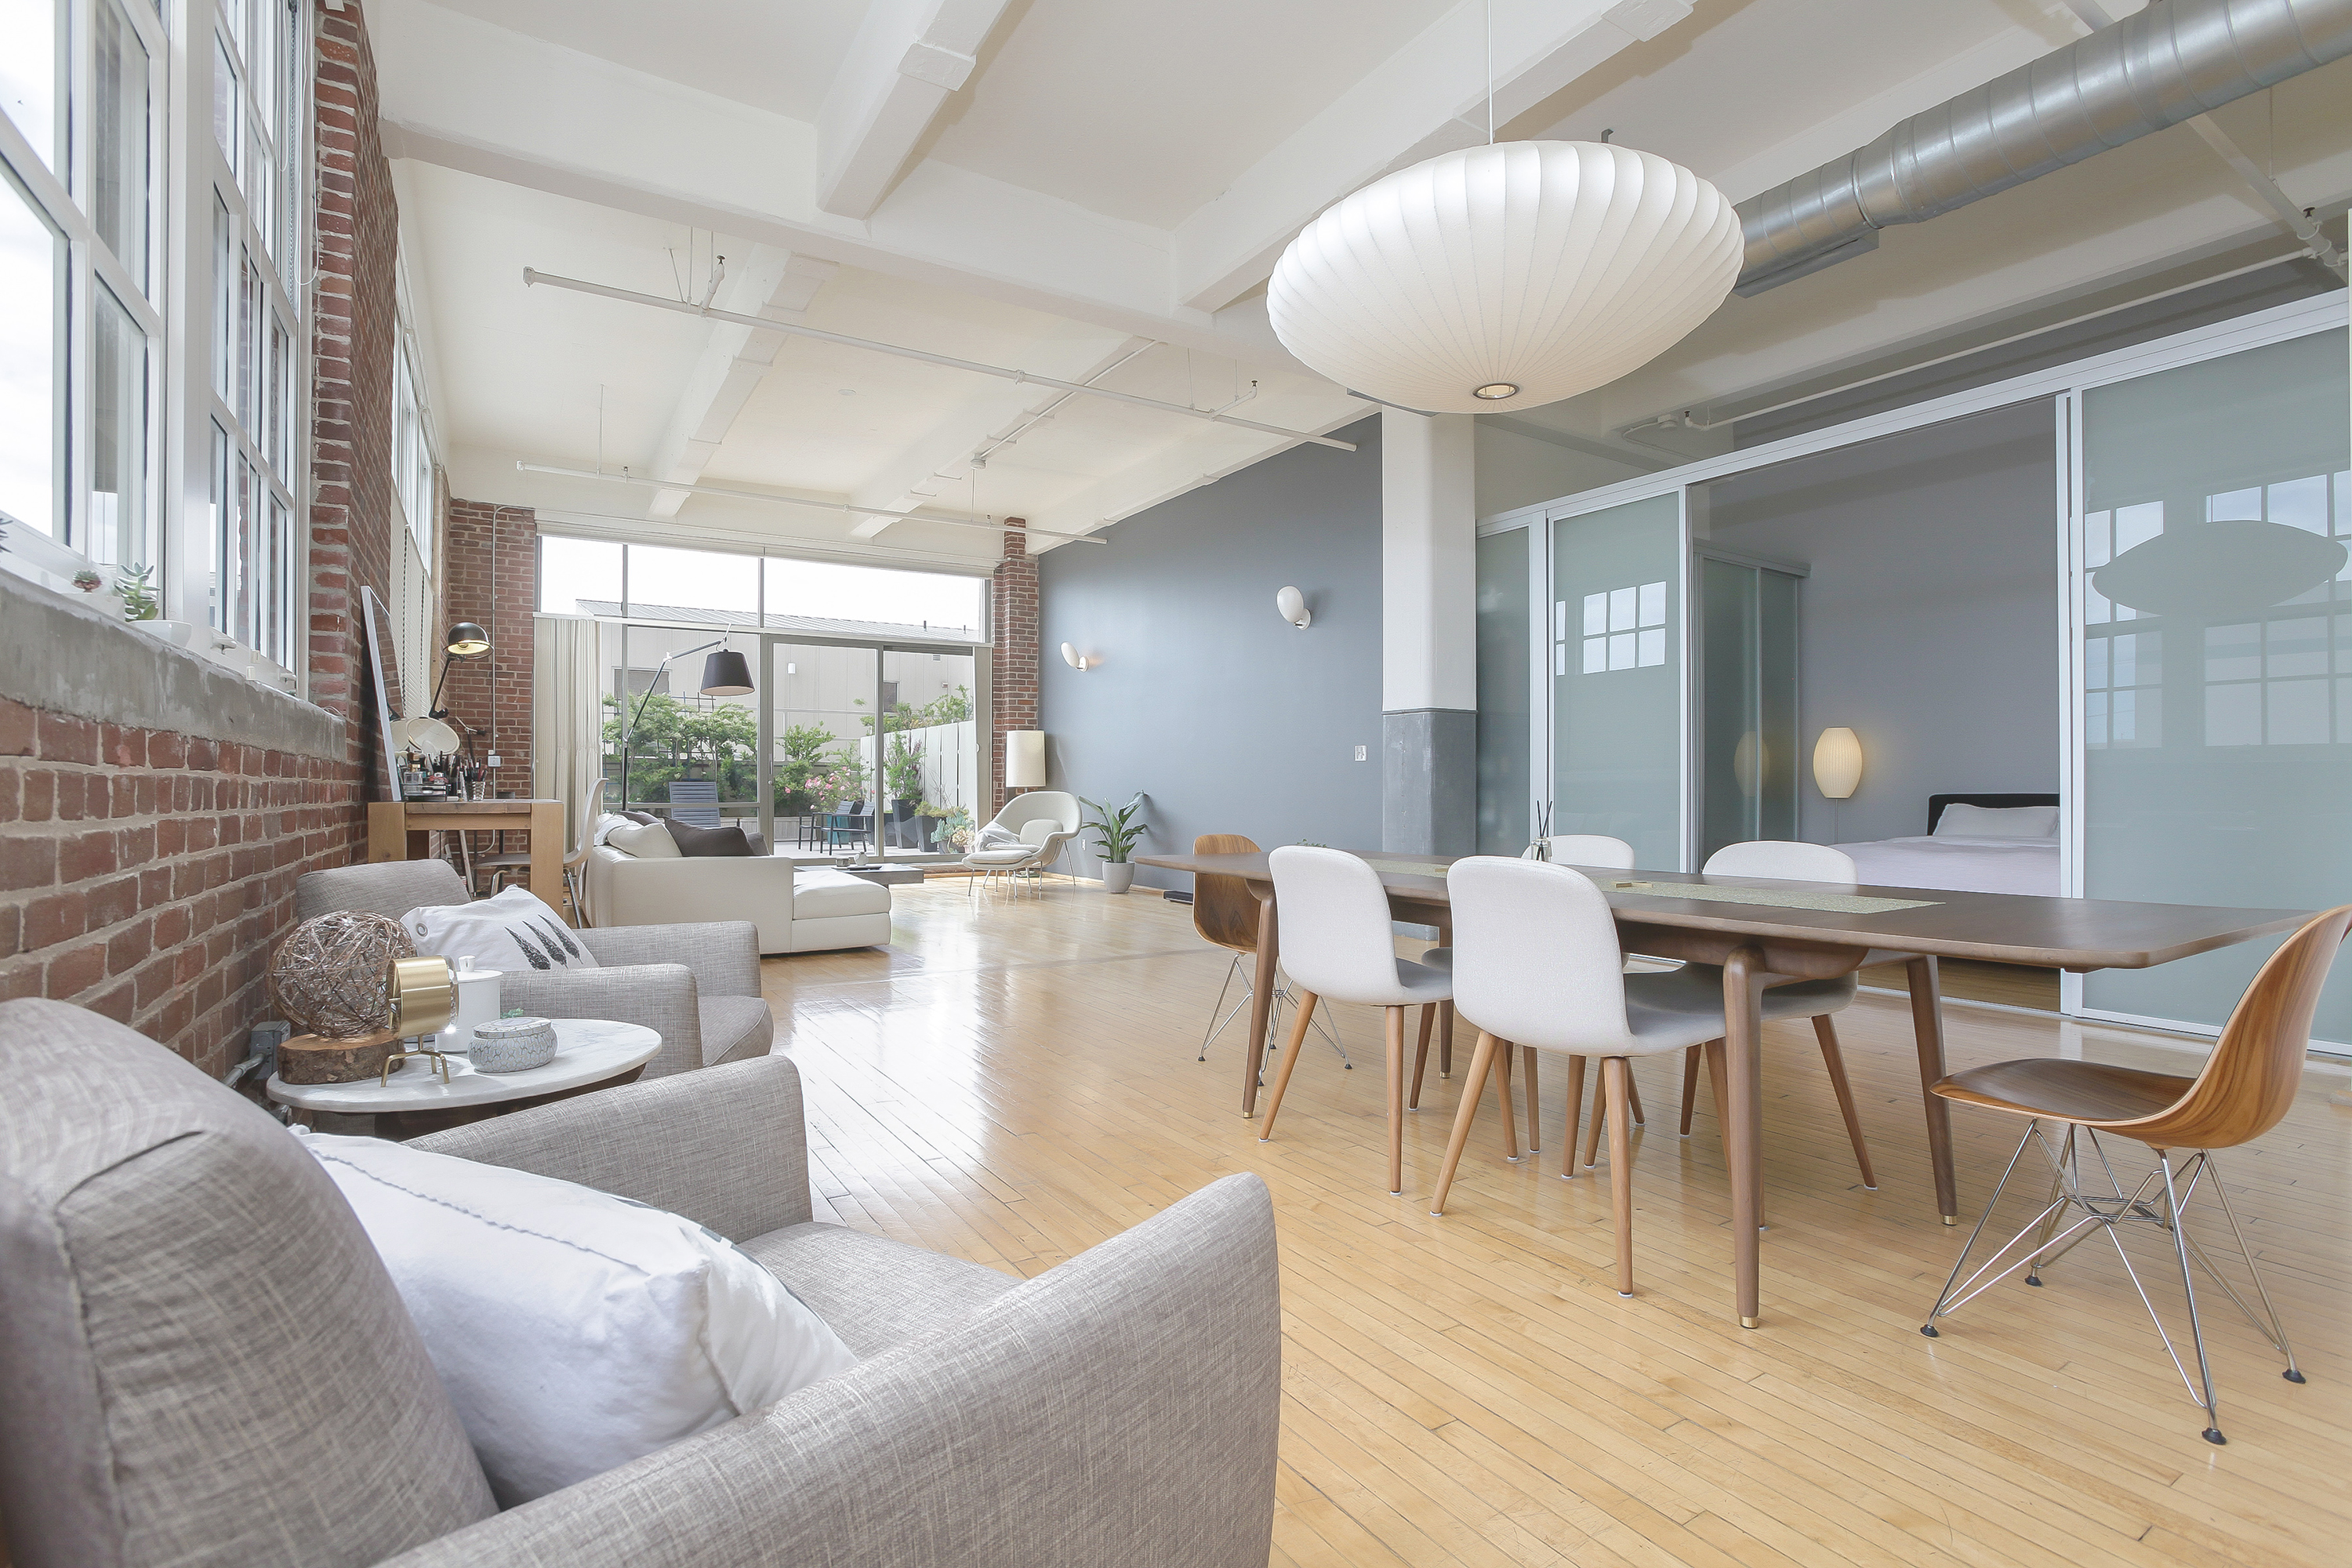 Located In The Arts Districtu0027s Landmarked Biscuit Company Lofts Building,  It Has Large Windows, High Ceilings, And Original Brick Walls That Drive  Home An ...